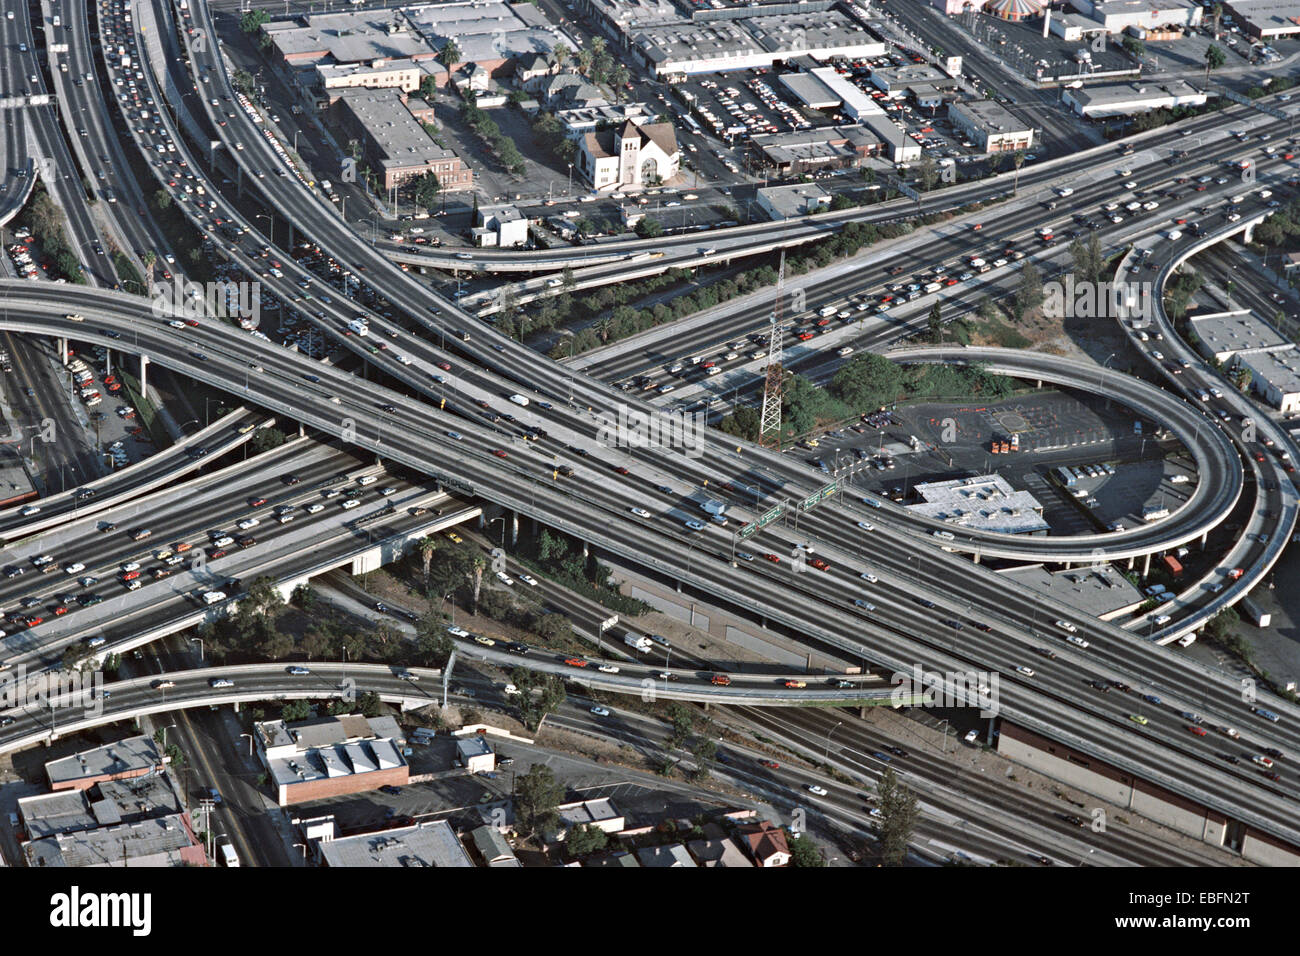 Aerial view of freeways, Los Angeles, California, USA - Stock Image